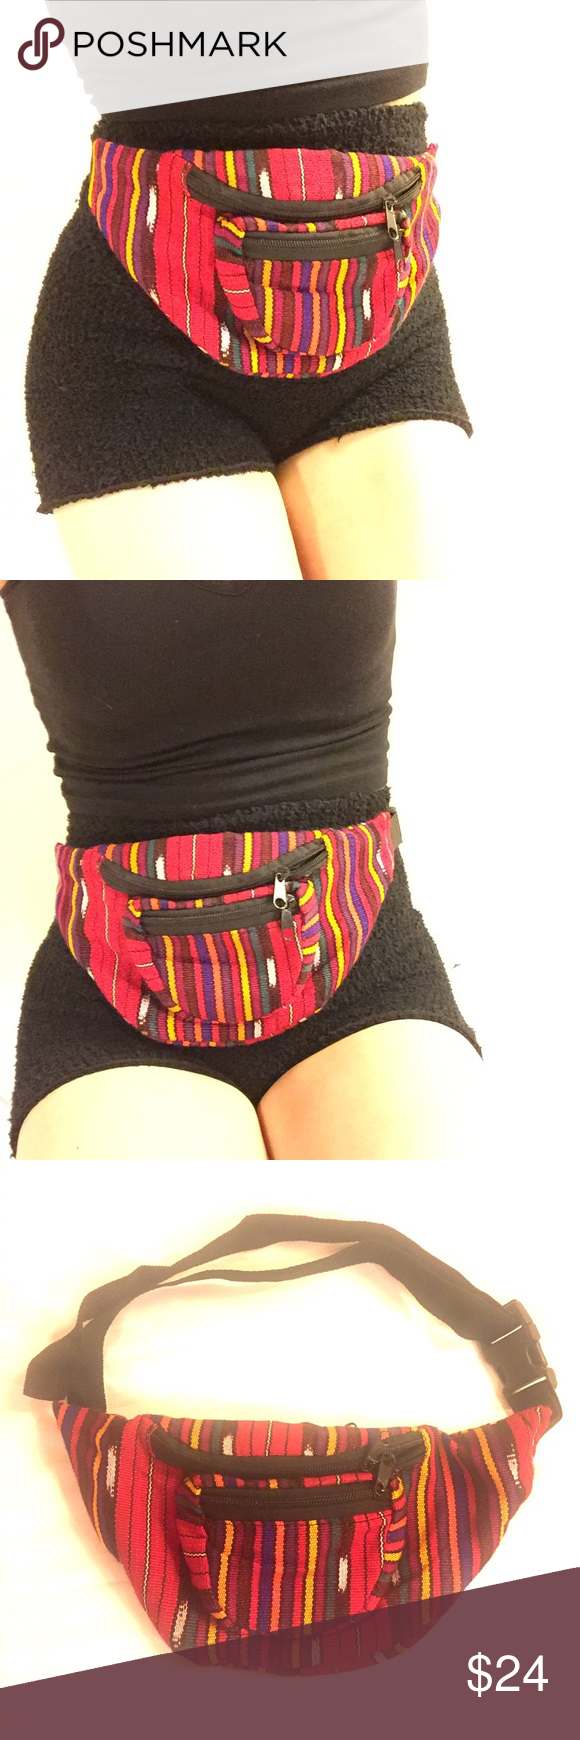 Tribal Baja Print Fanny Pack Bum Belt Bag Mexican Boutique